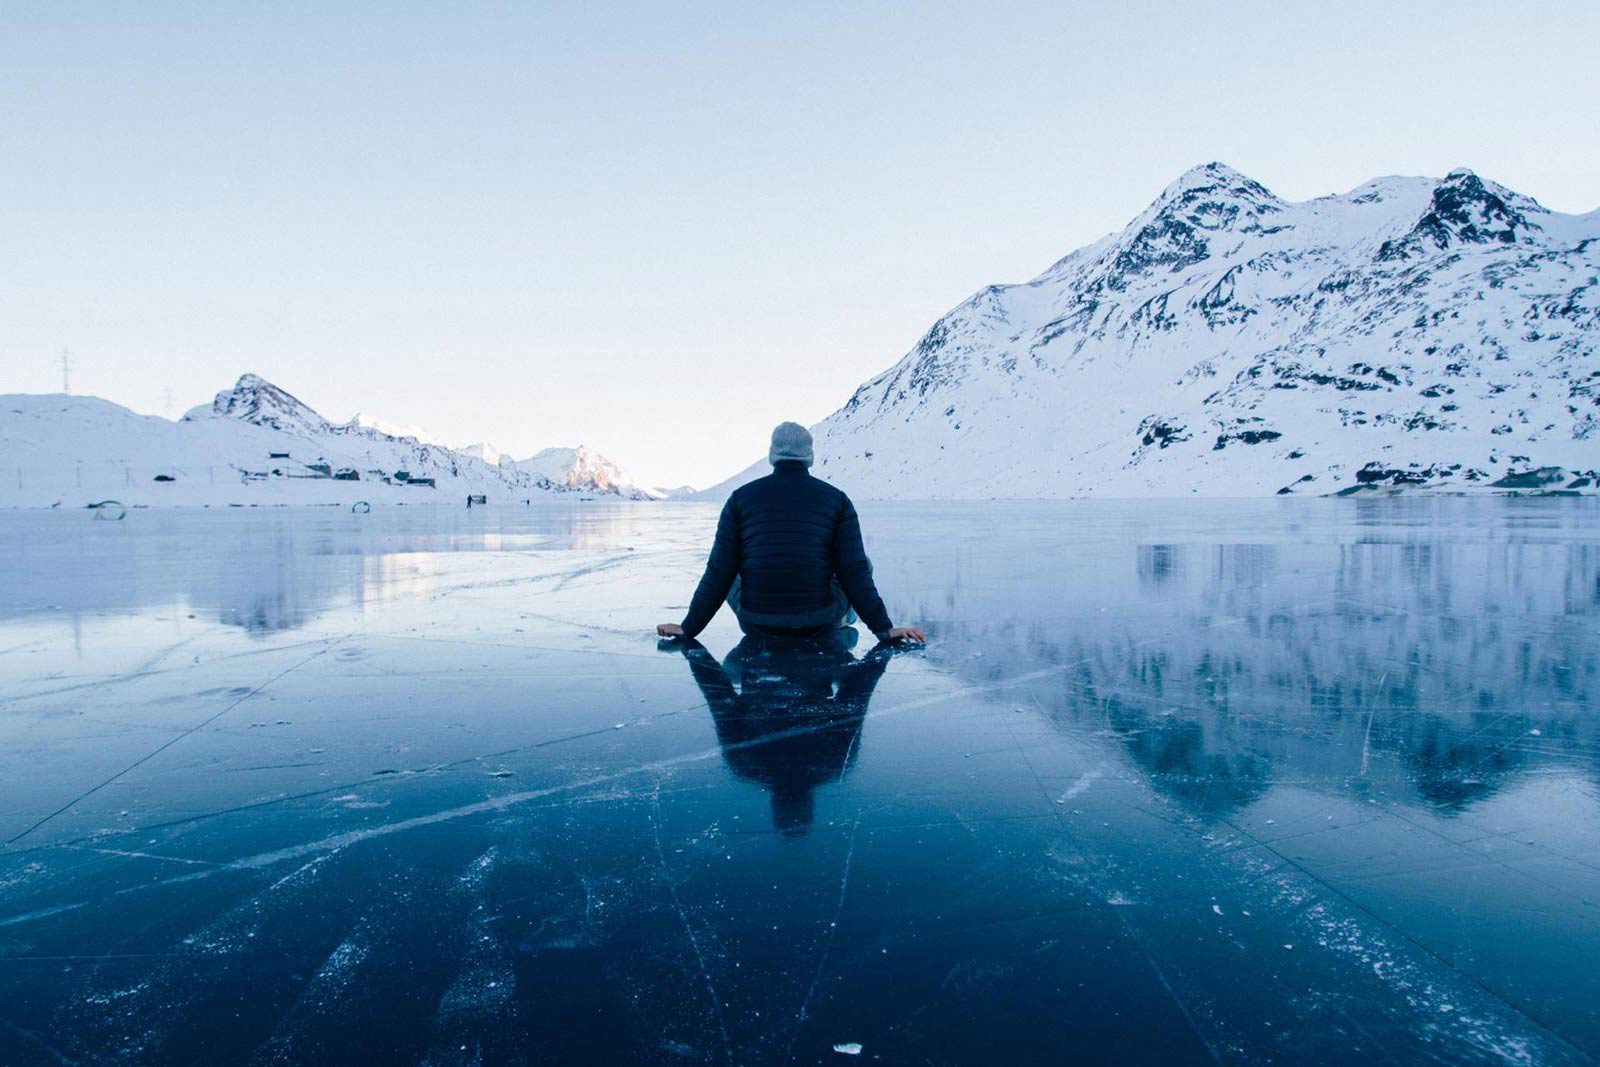 Man with back turned sitting on ice surrounded by snowy mountains.